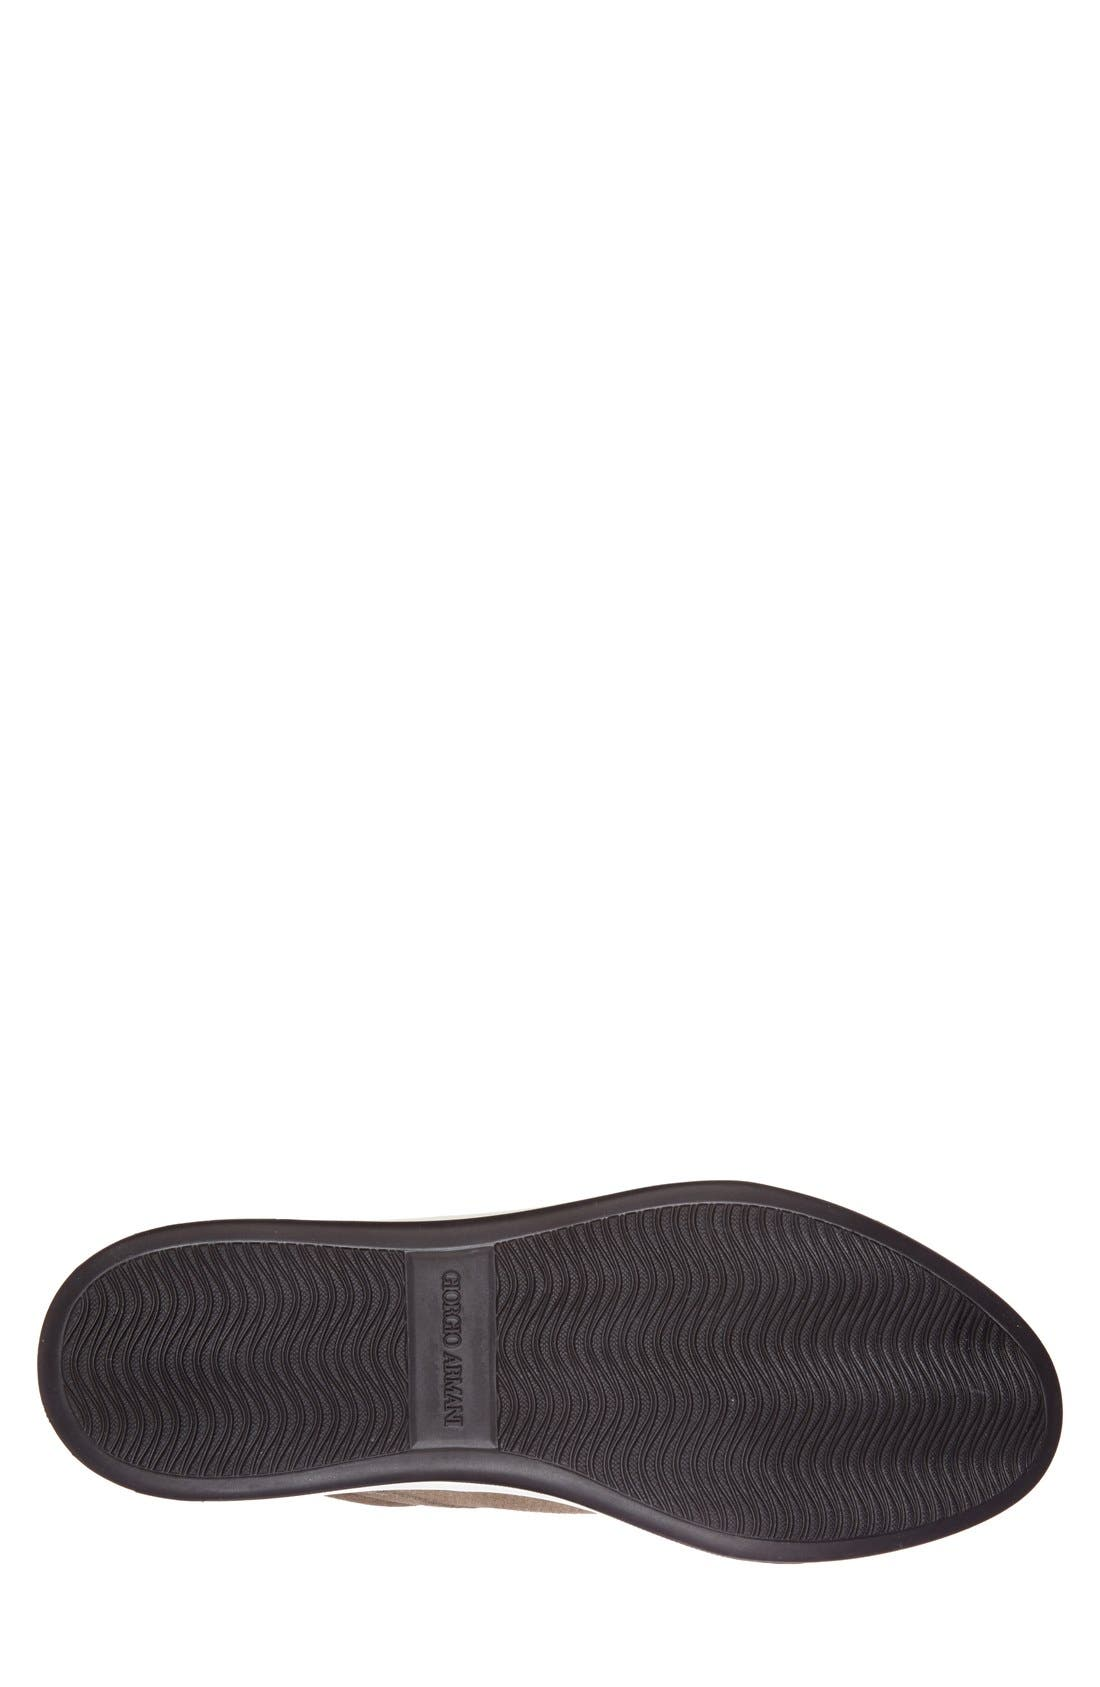 Perforated Suede Sneaker,                             Alternate thumbnail 3, color,                             260